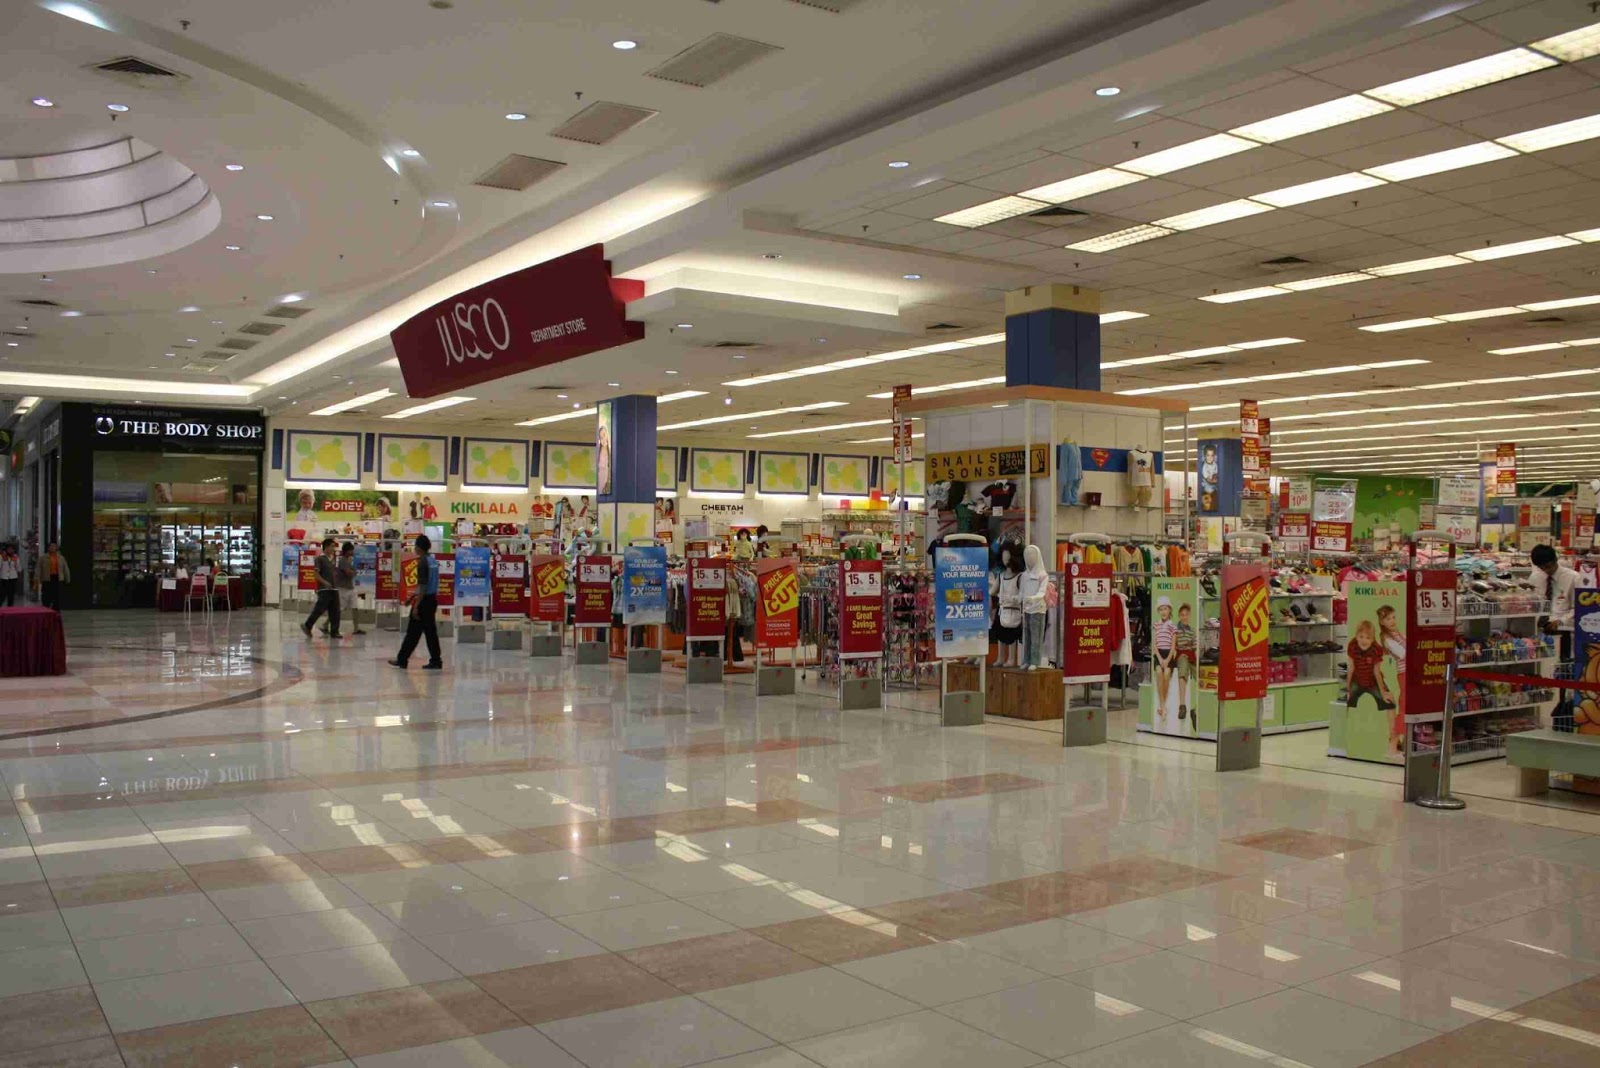 Jusco voucher for RM at Cheras, Kuala Lumpur. Jusco voucher - Tickets & Vouchers for sale in Cheras, Kuala Lumpur Find almost anything in on bigframenetwork.ga, Malaysia's largest marketplace.